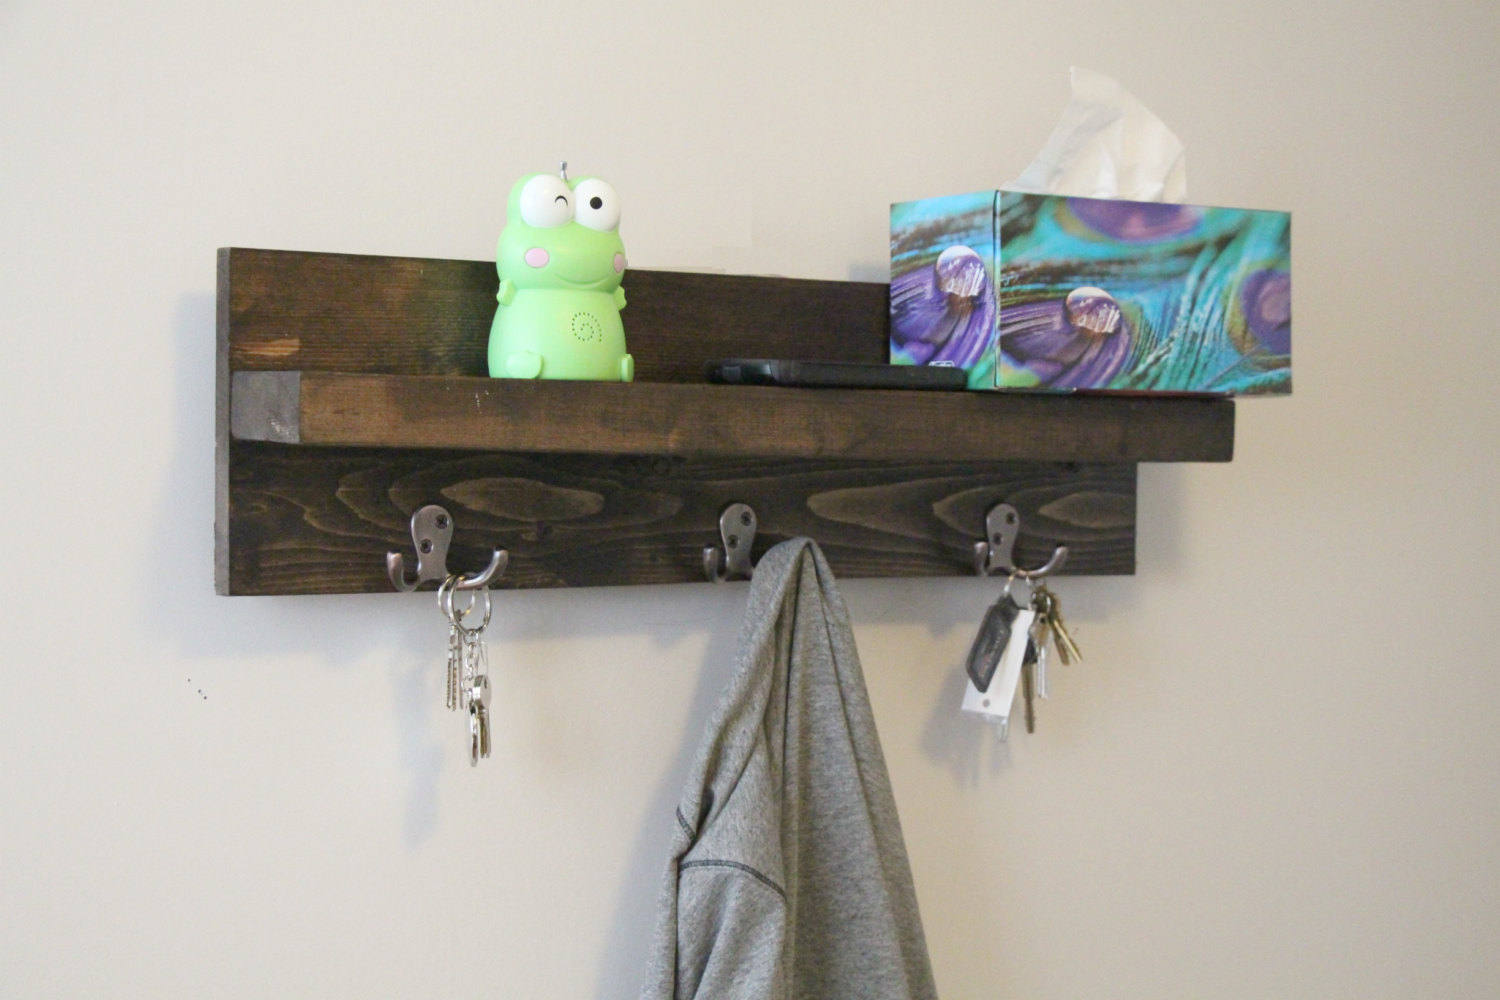 Wooden Key Holder With Shelf Buy Large Key Holder For Wall Key Holder Shelf Key